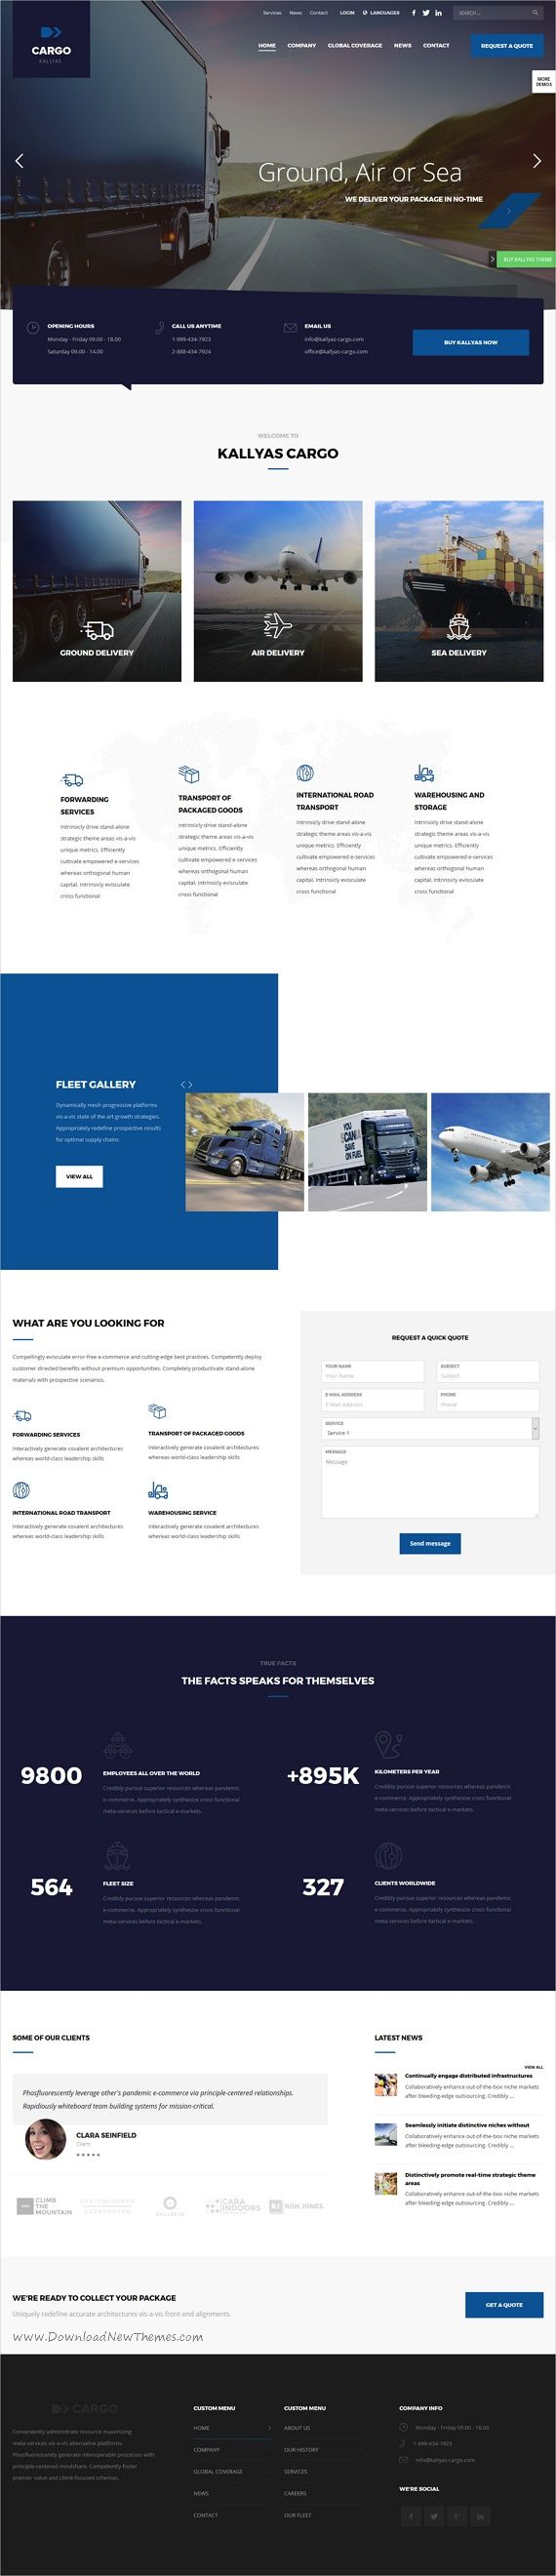 Kallyas is a creative and beautifully design responsive #WordPress theme for #cargo #logistic #transport companies stunning websites with 35+ multipurpose niche homepage layouts download now➩ https://themeforest.net/item/kallyas-responsive-multipurpose-wordpress-theme/4091658?ref=Datasata